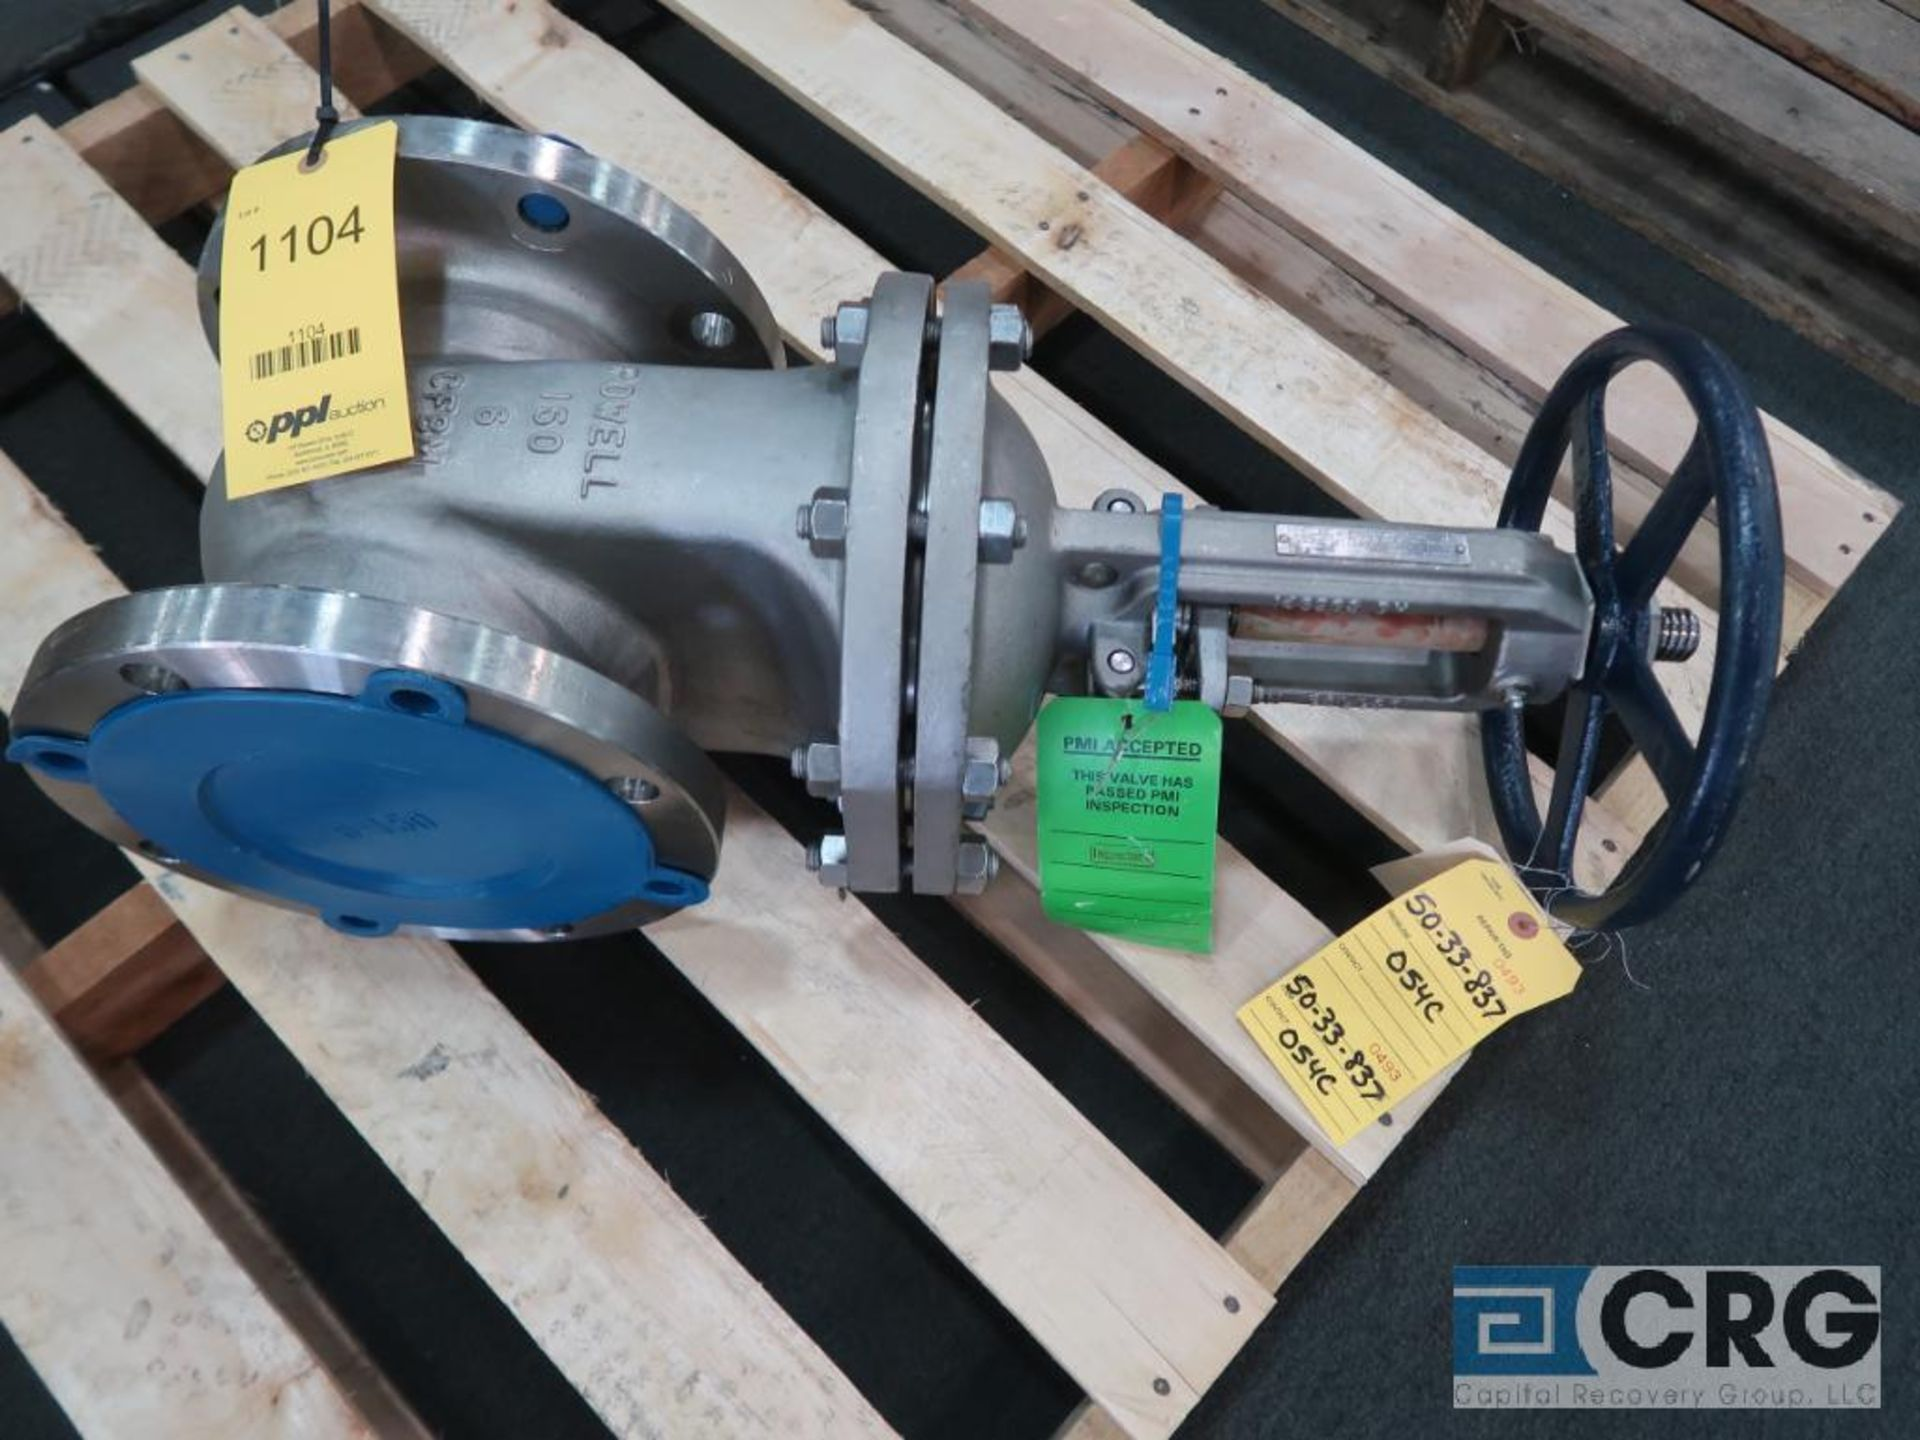 Powell stainless 7 in. ball valve (Finish Building)